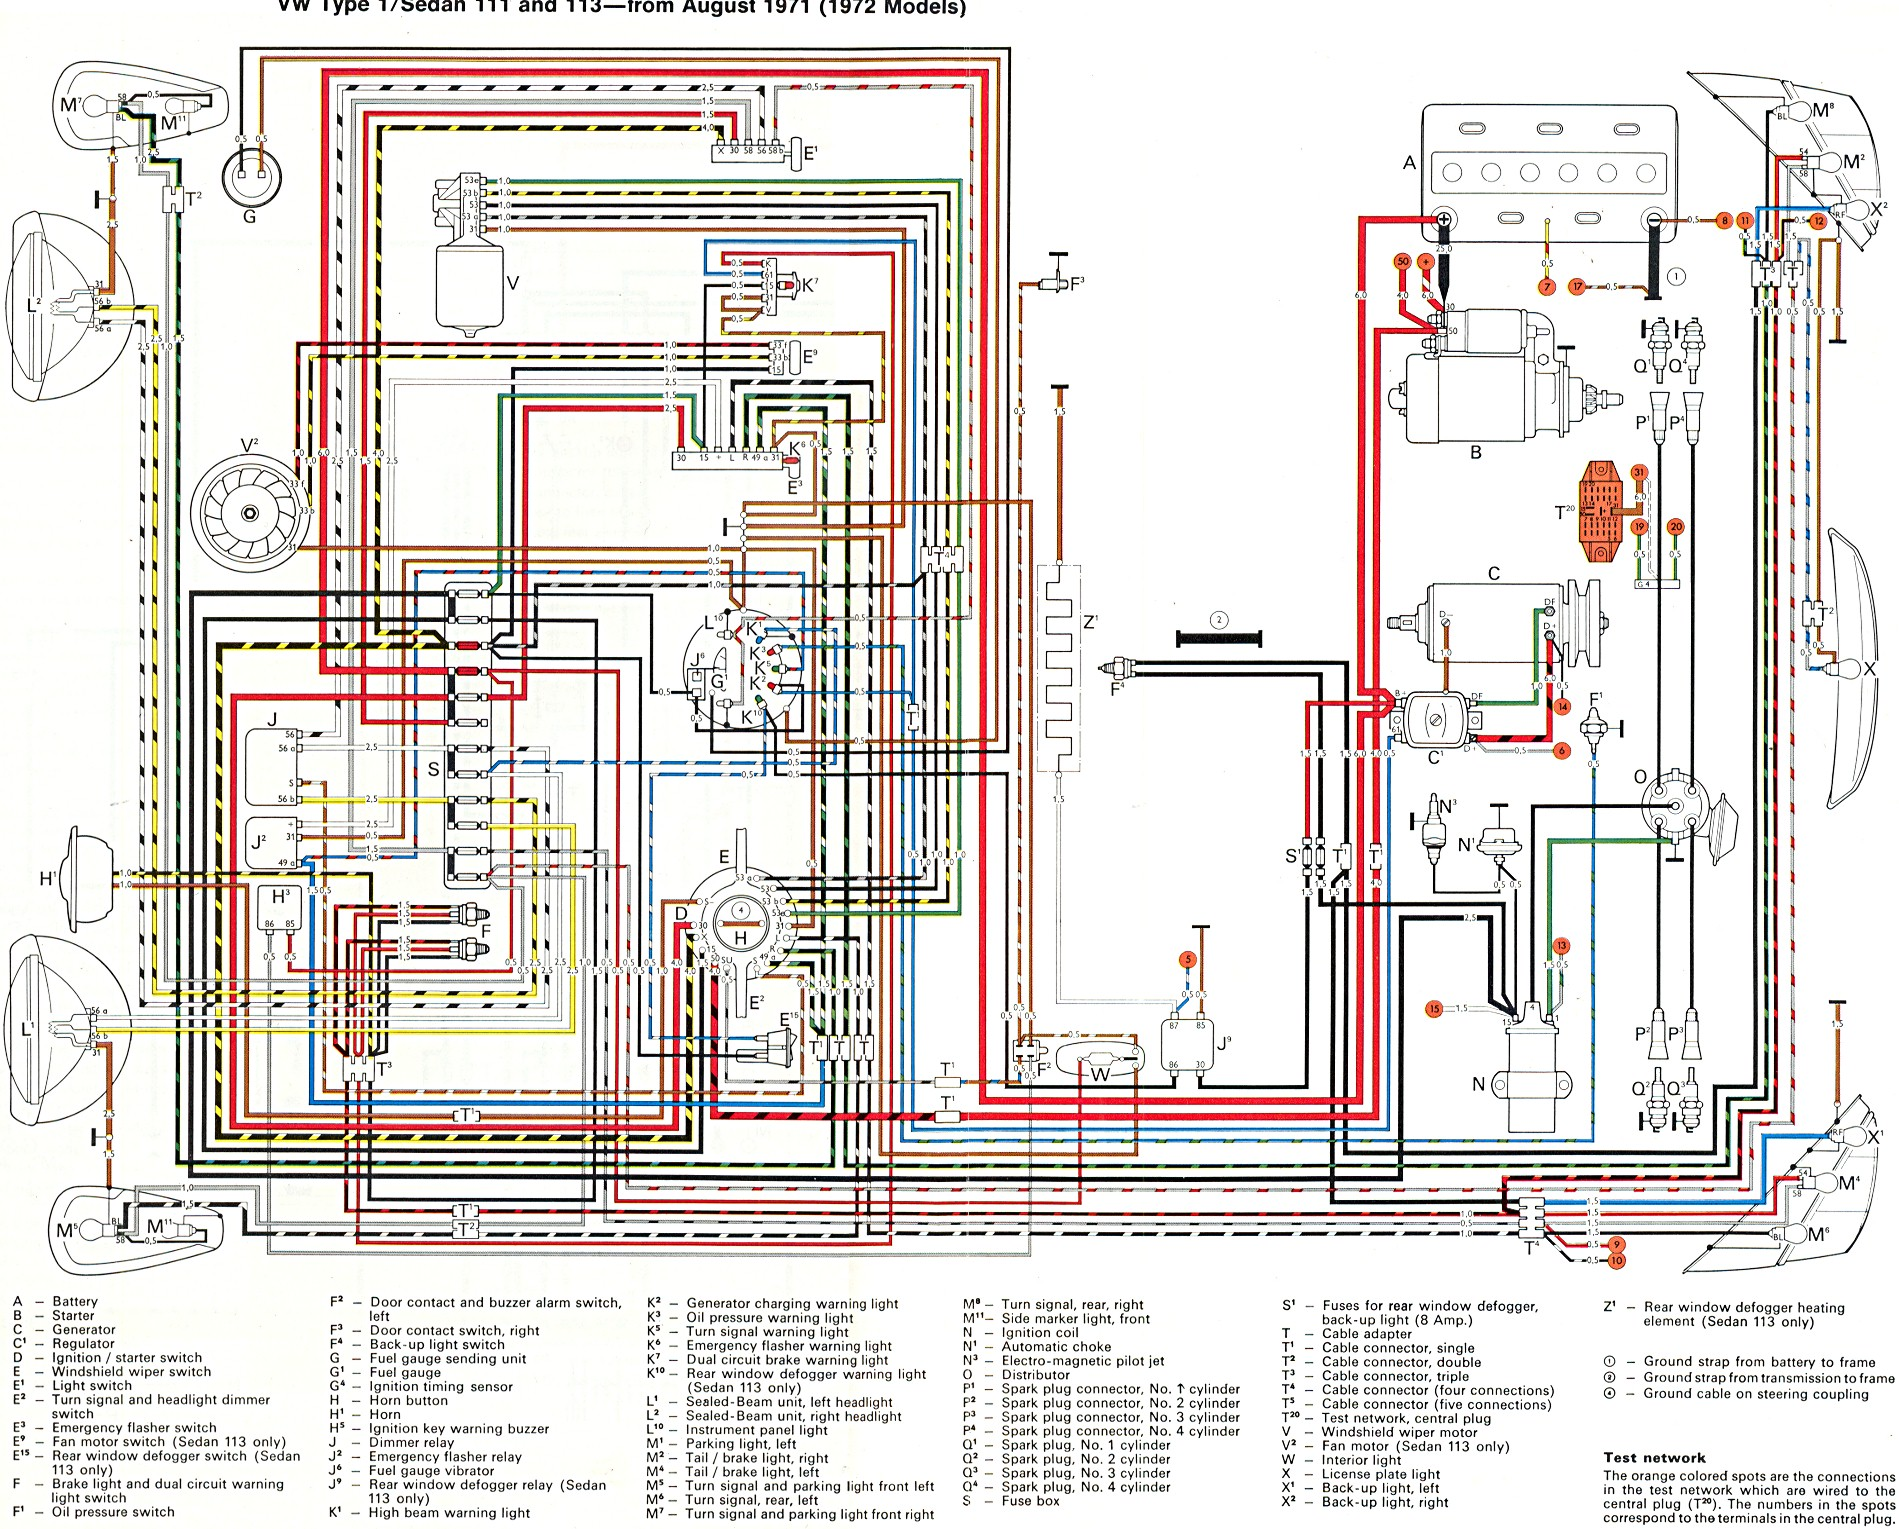 bug_std_super_72 72 beetle volkswagen wire diagrams volkswagen wiring diagram 1971 vw super beetle wiring diagram at bayanpartner.co